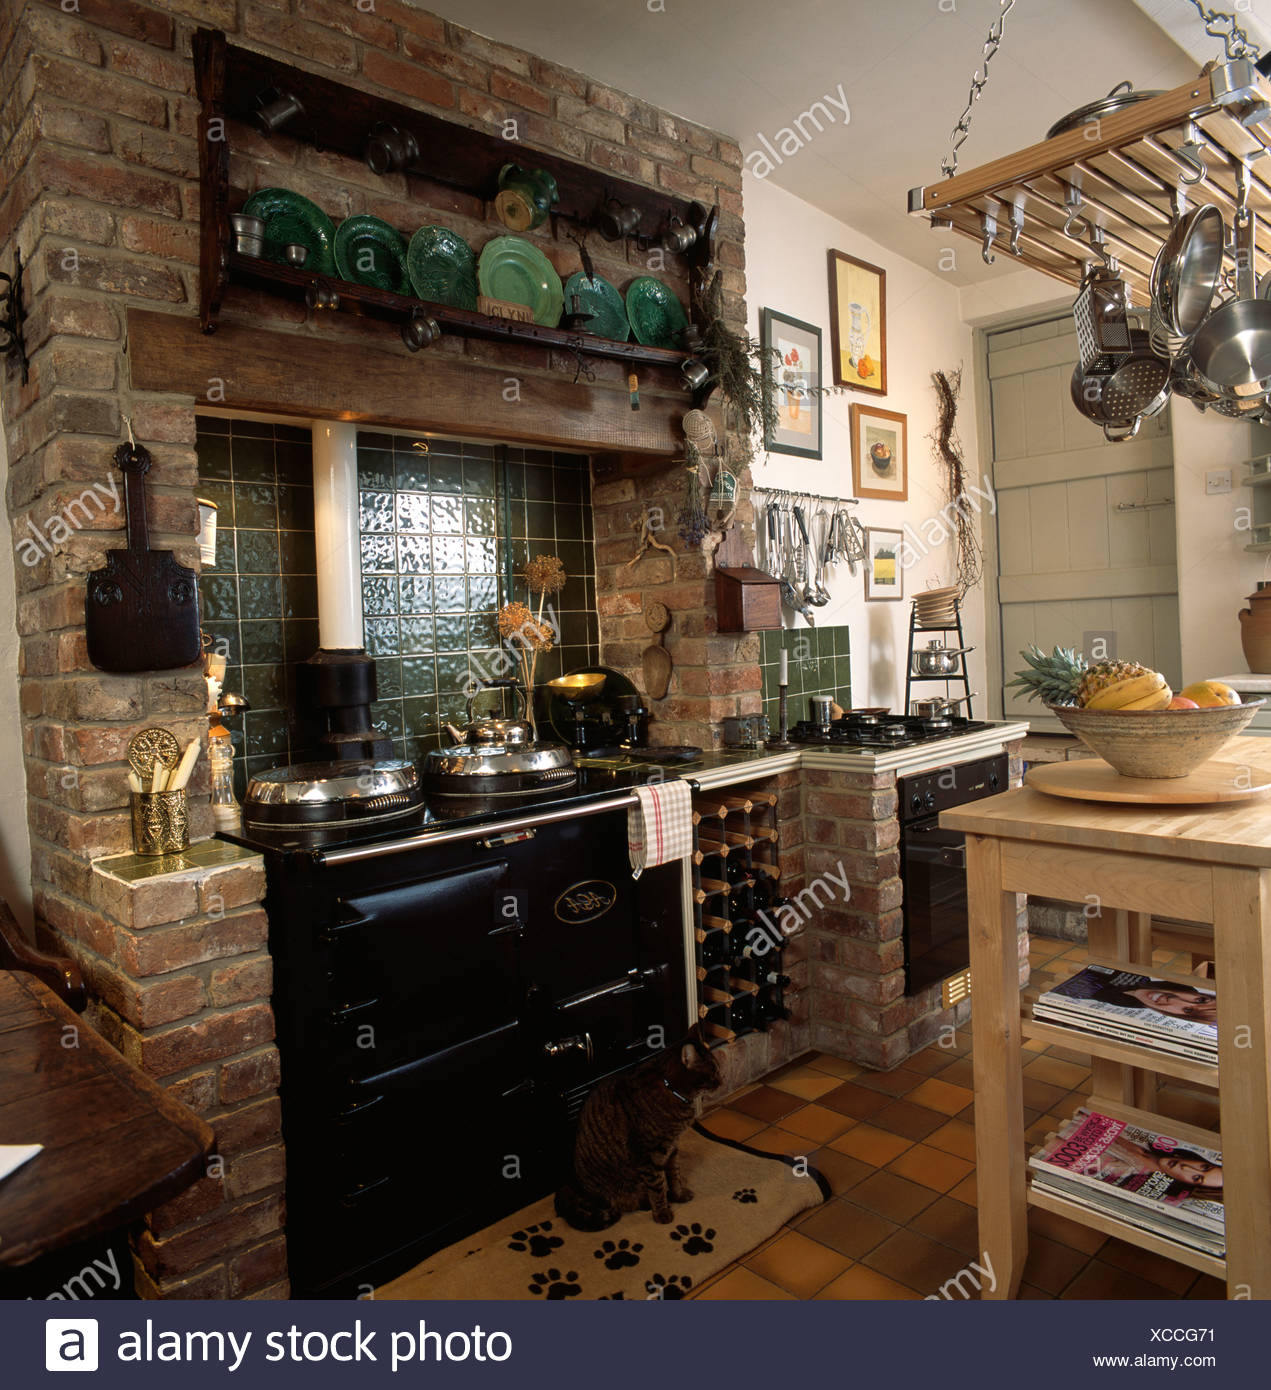 Wine Storage Rack Beside Black Aga In Exposed Brick Fireplace